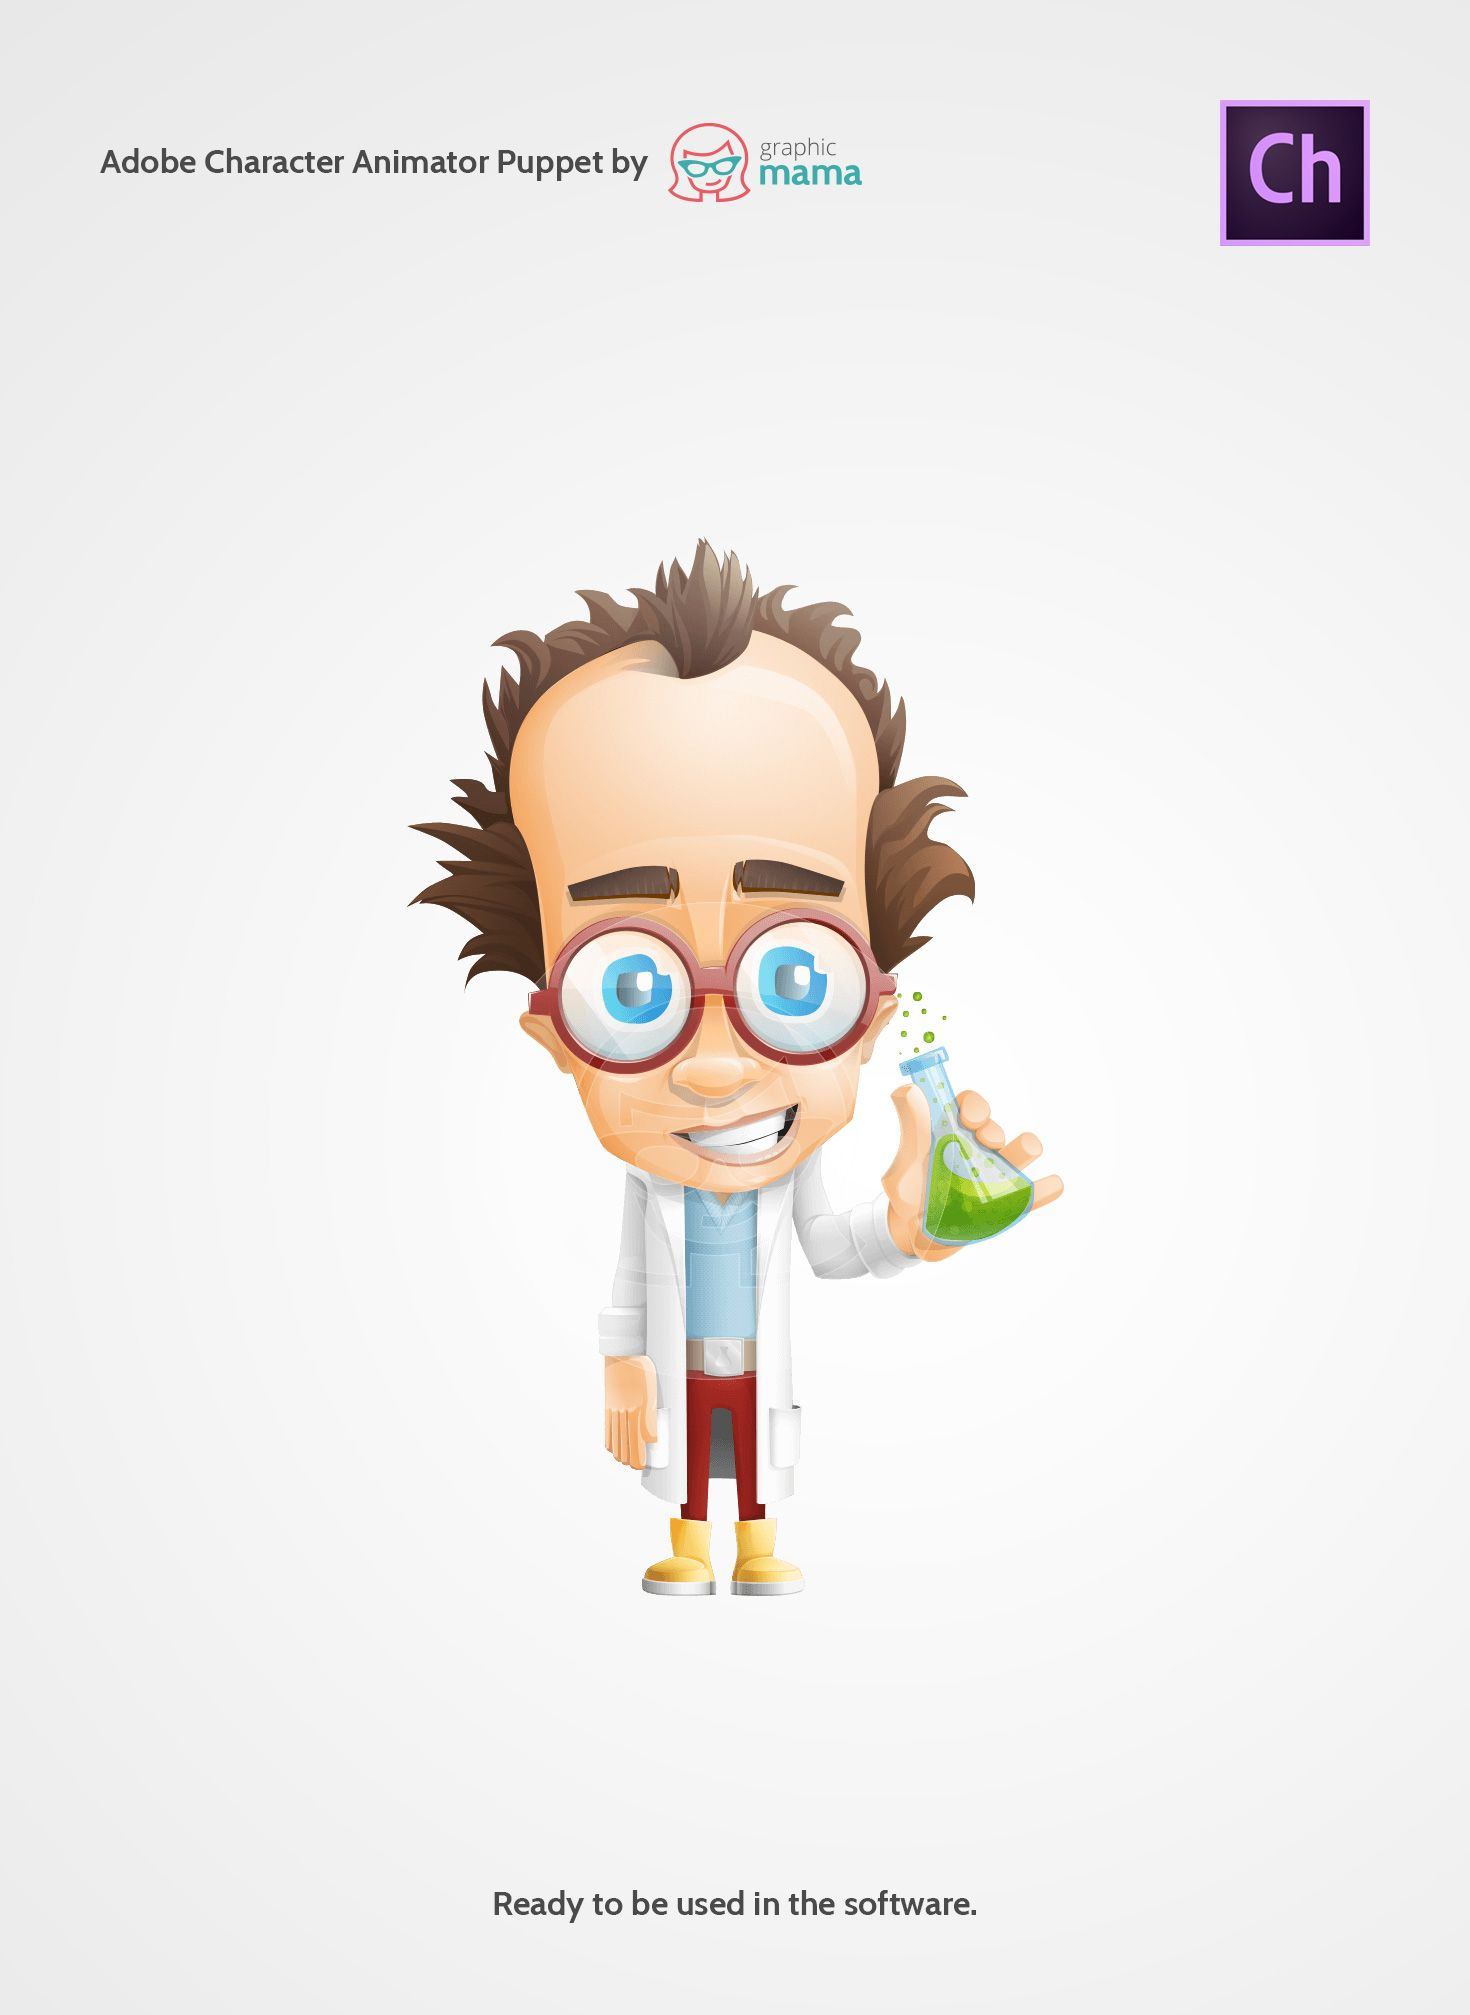 a mad scientist cartoon character prepared as an adobe character